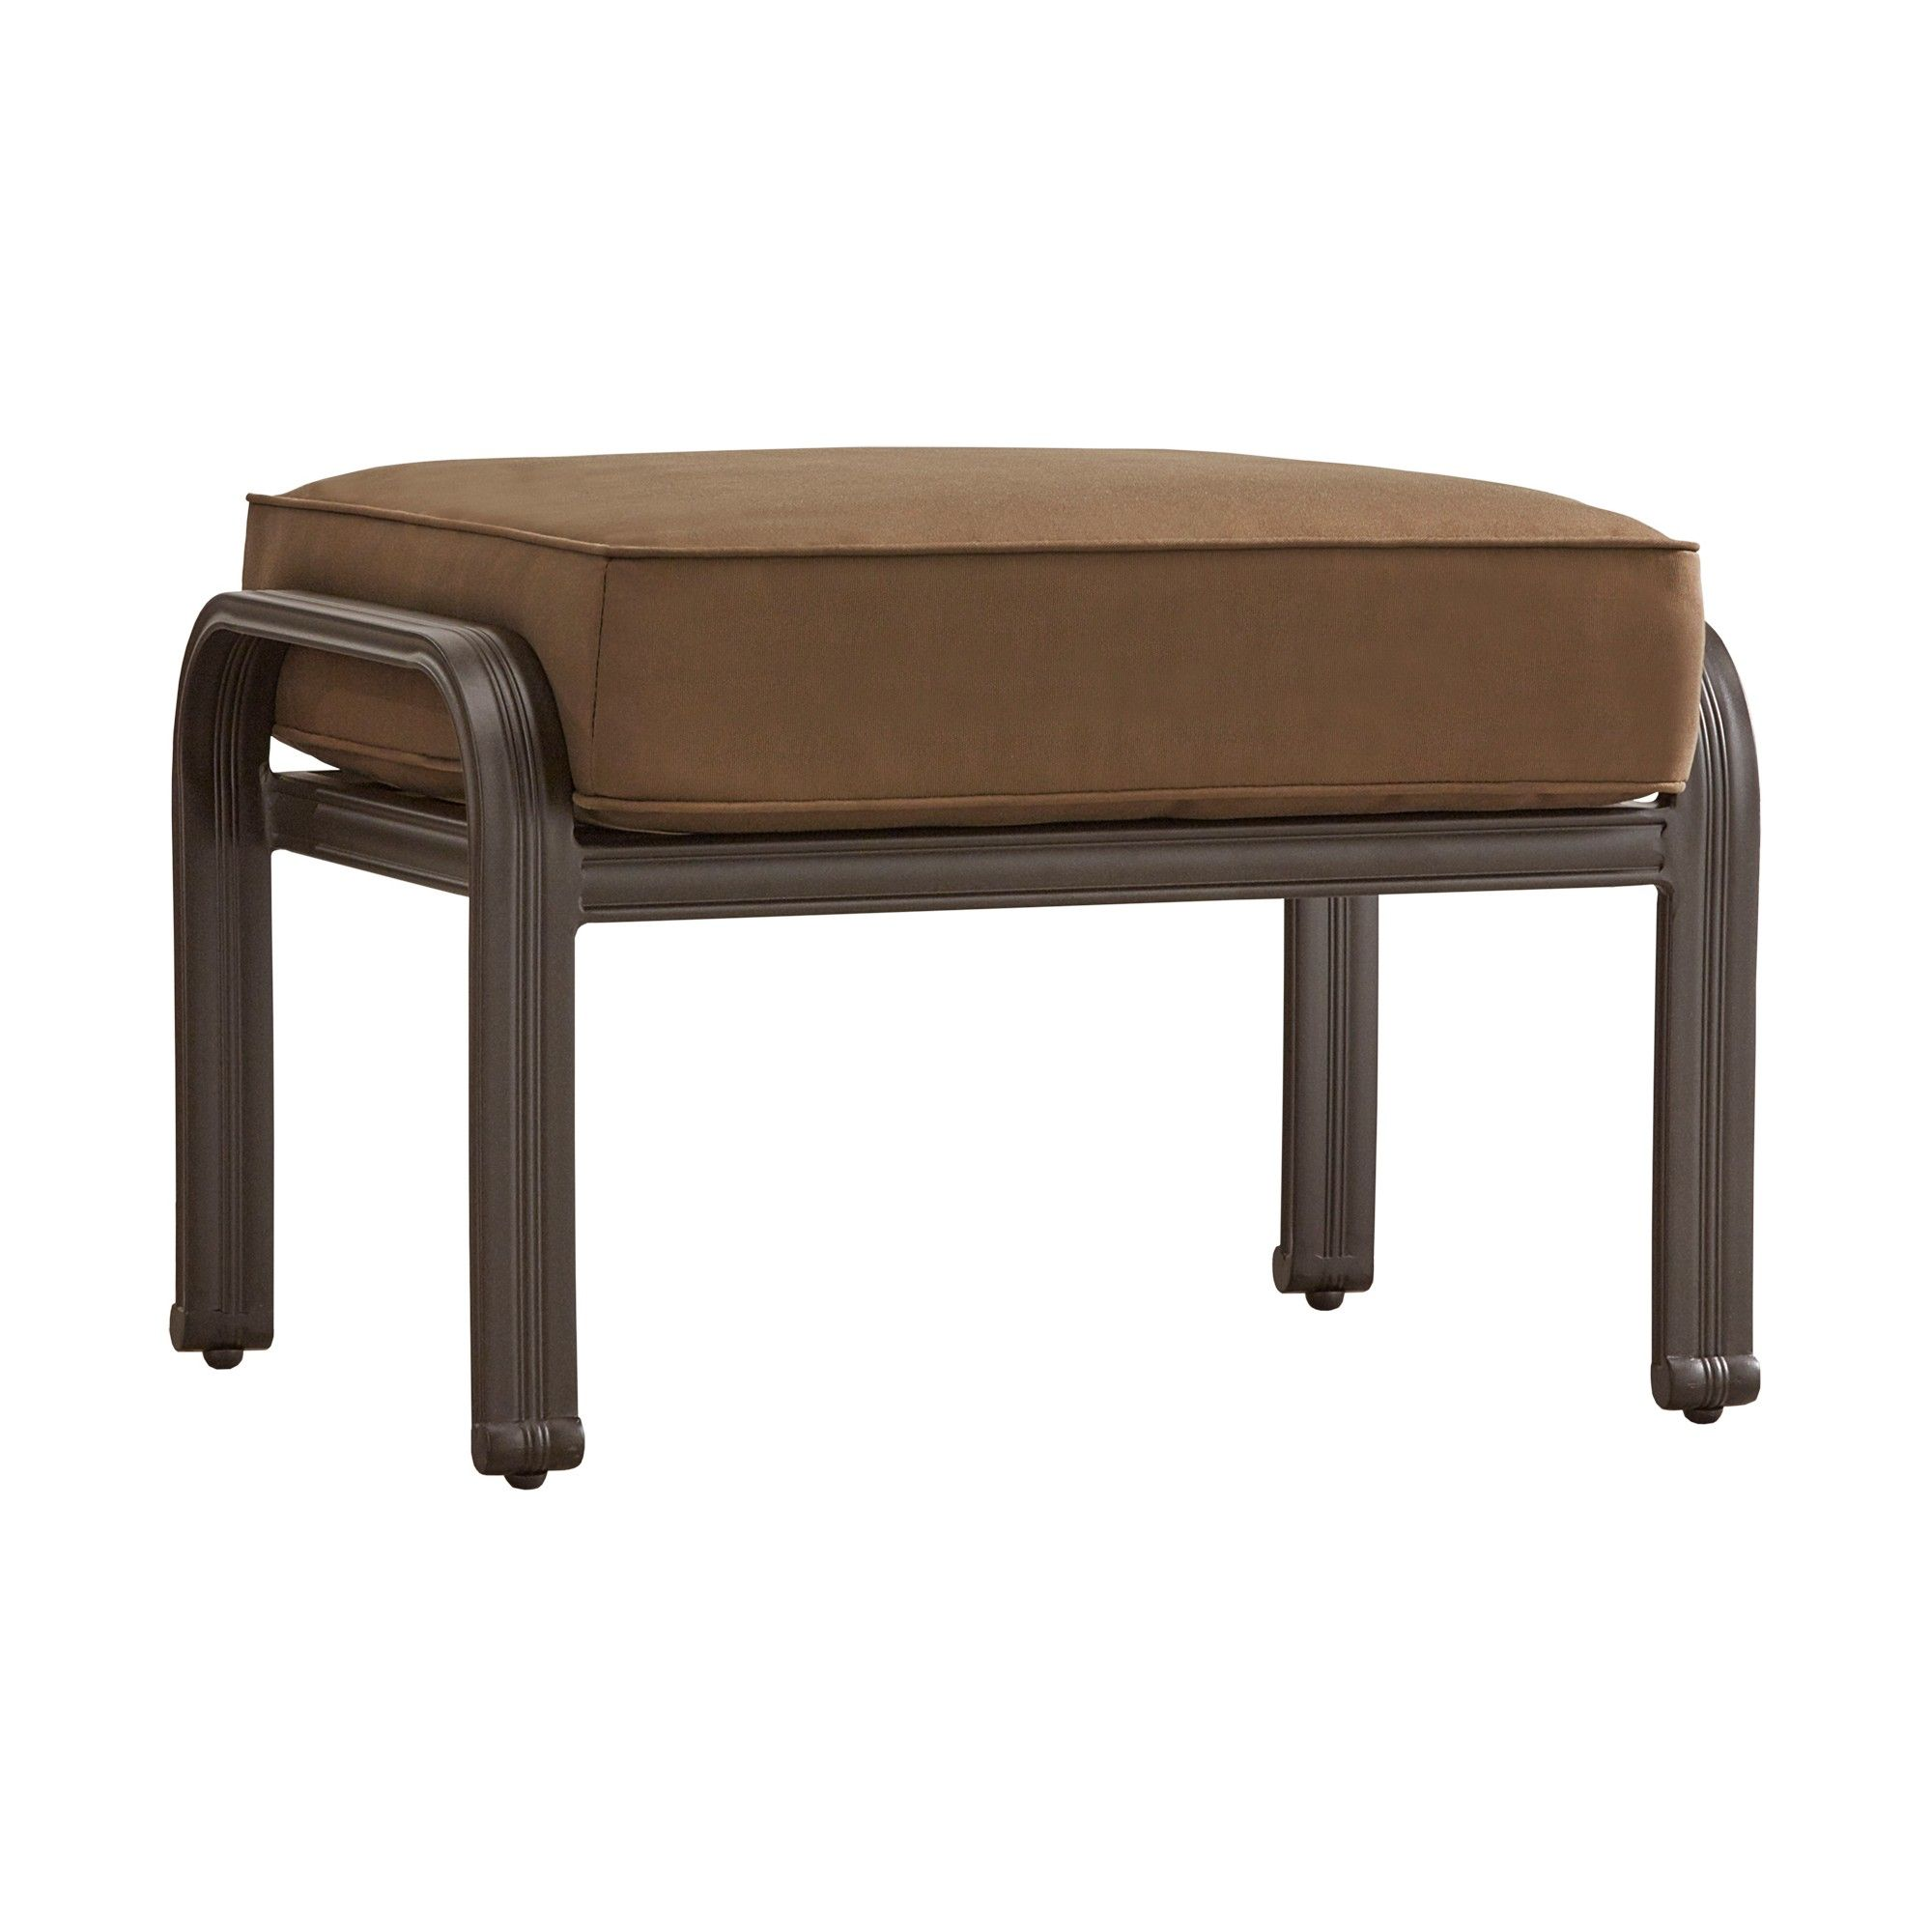 Exceptionnel Bedford Hill Aluminum Patio Ottoman With Cushion   Brown   Inspire Q